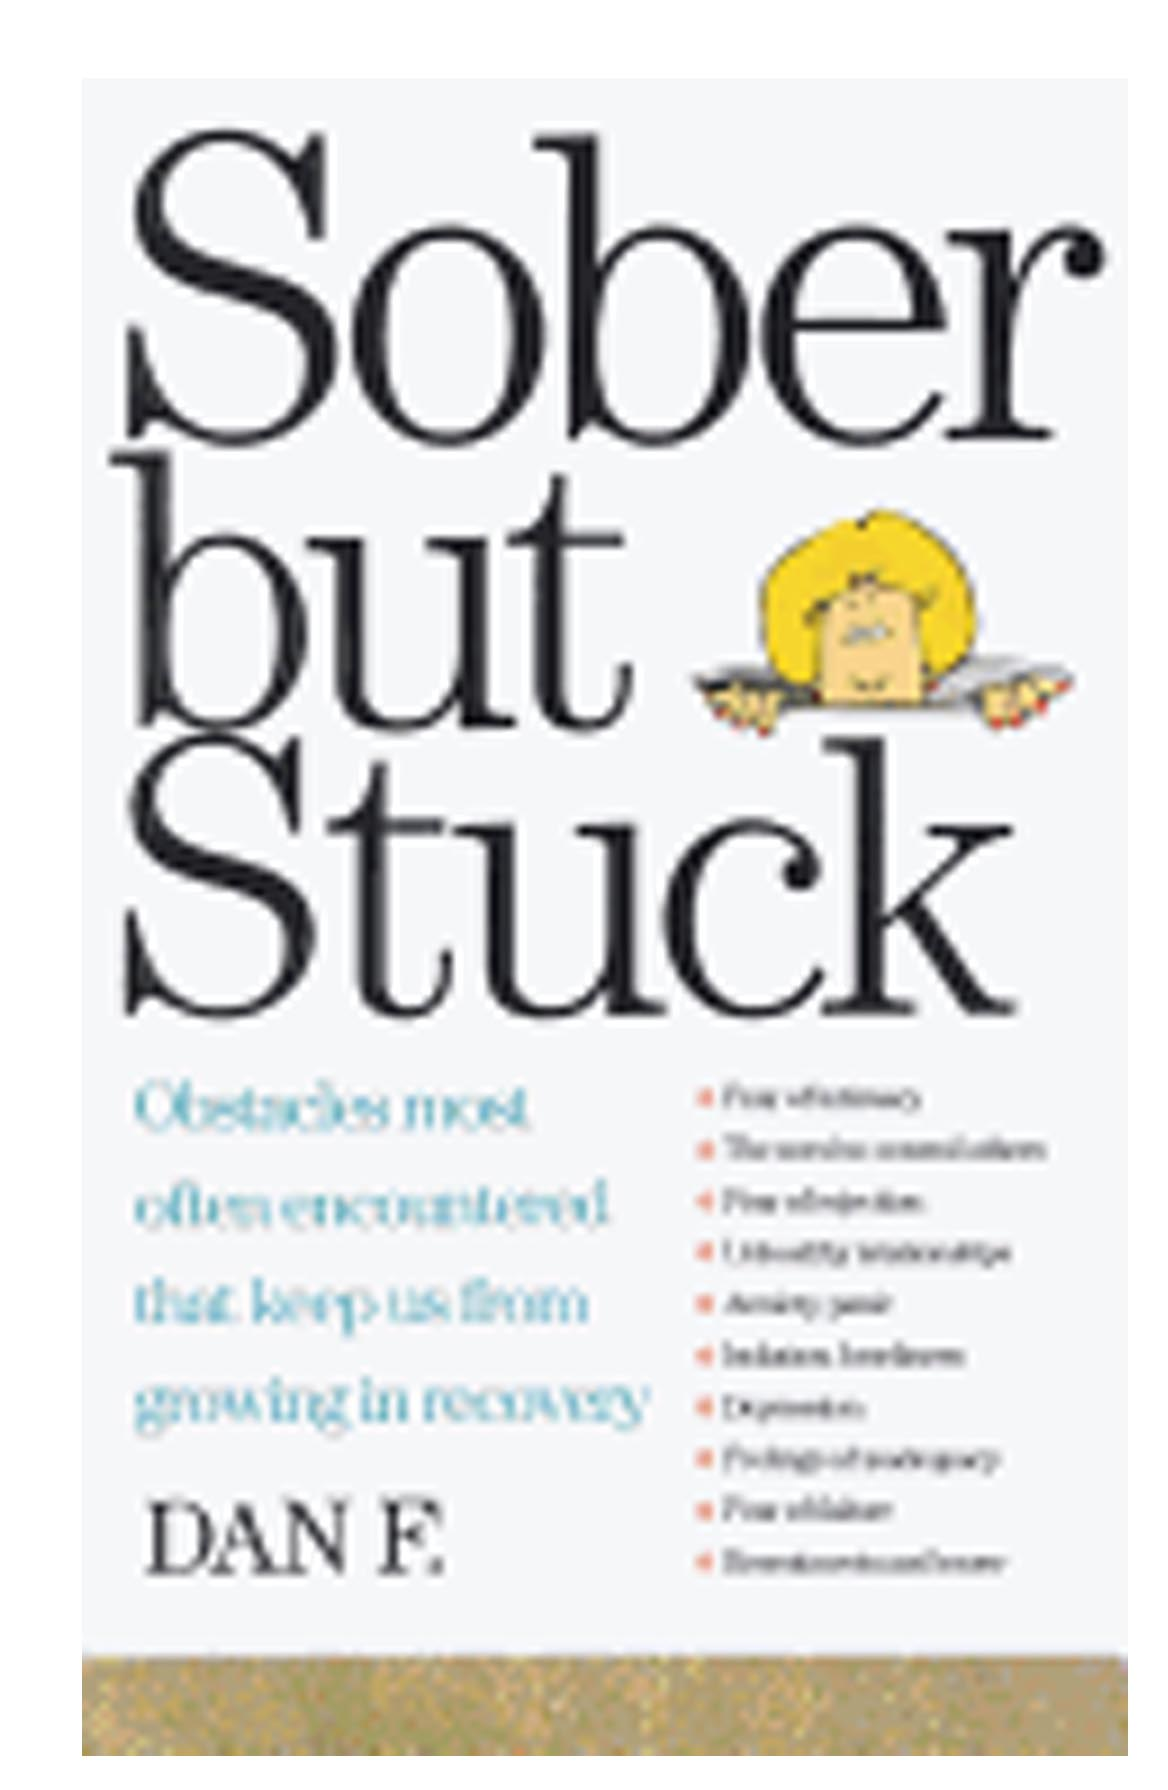 Sober But Stuck: Obstacles Most Often Encountered That Keep Us from Growing in Recovery (Revised)  by Dan F. 108-9781568380780, deals with Twelve Step Programs.